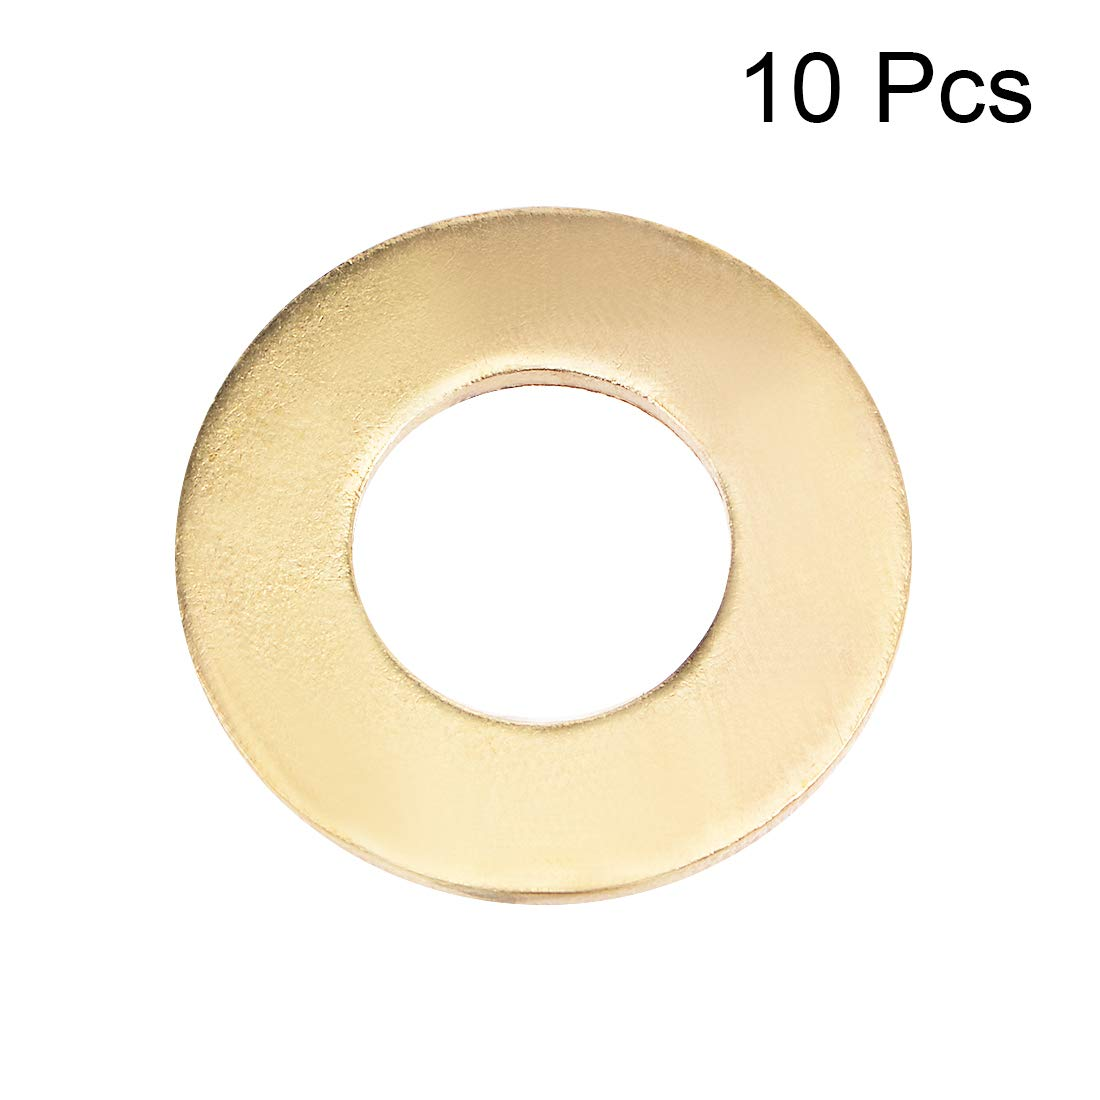 uxcell M5x10mmx0.5mm Stainless Steel Round Flat Washer for Bolt Screw 100Pcs SYNCE008362